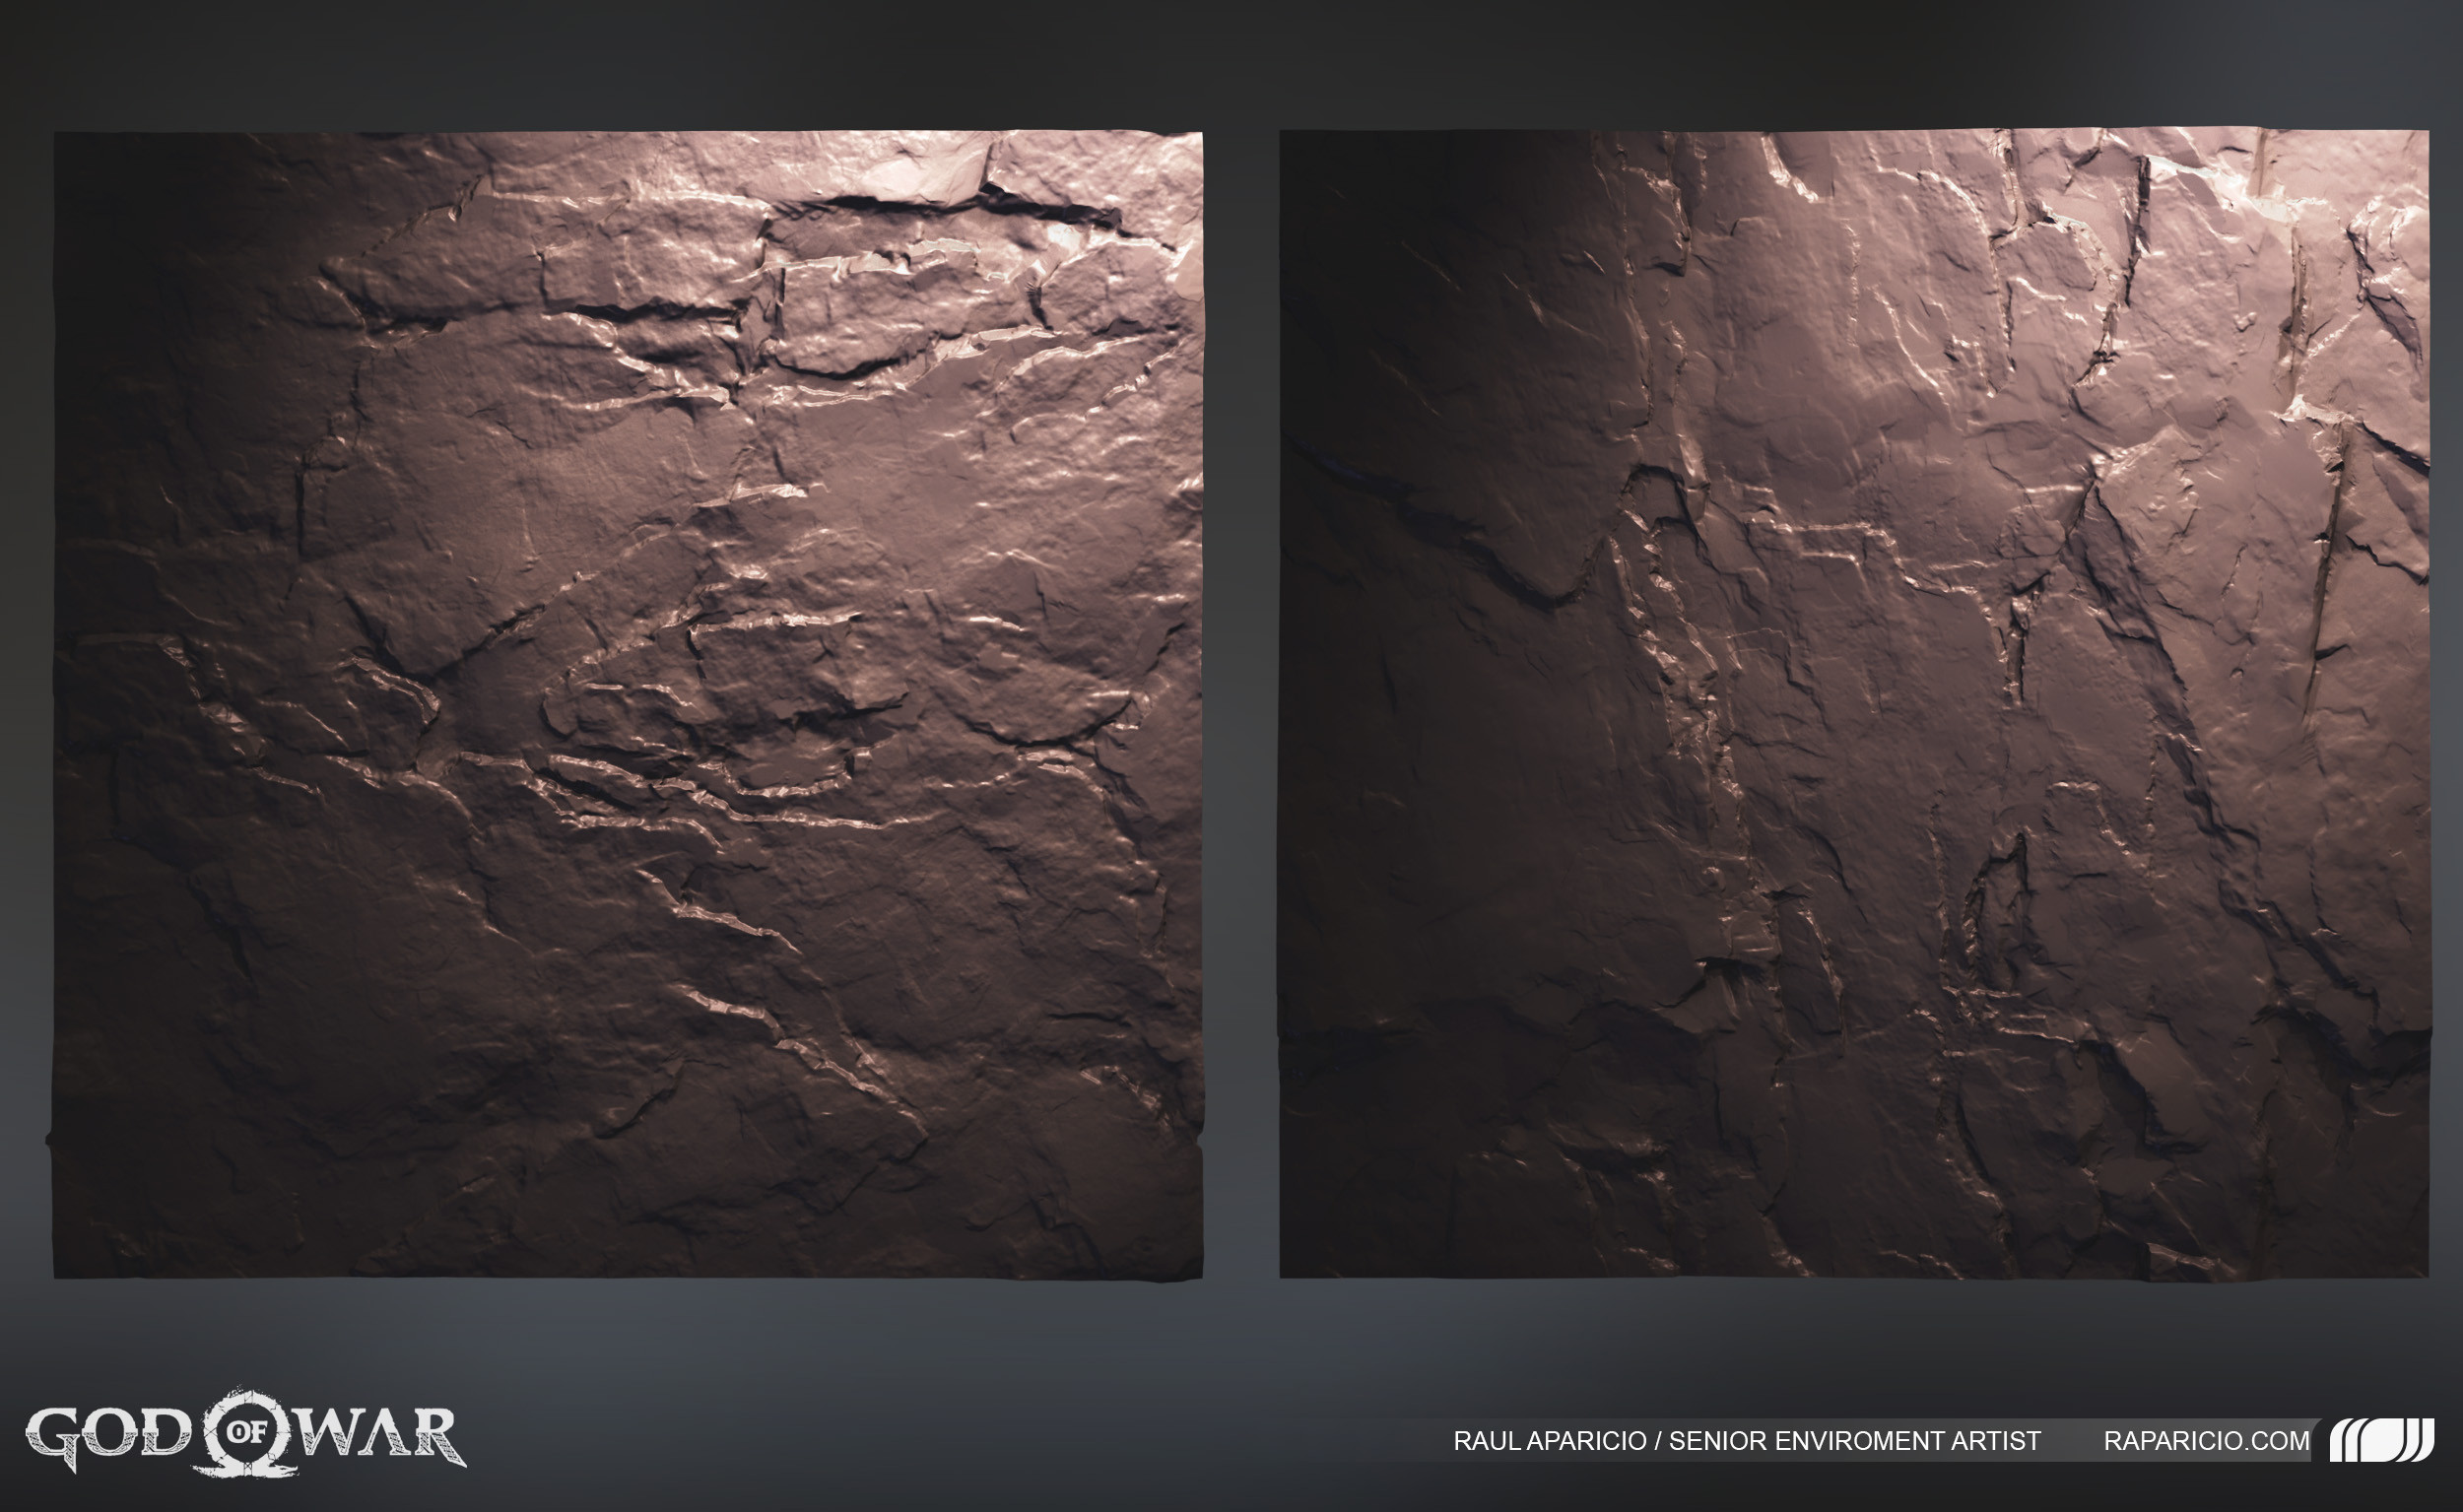 Hand sculpted zbrush tiling textures. Using a combination of alphas created by hand and using a little bit of photogrametry and photos.